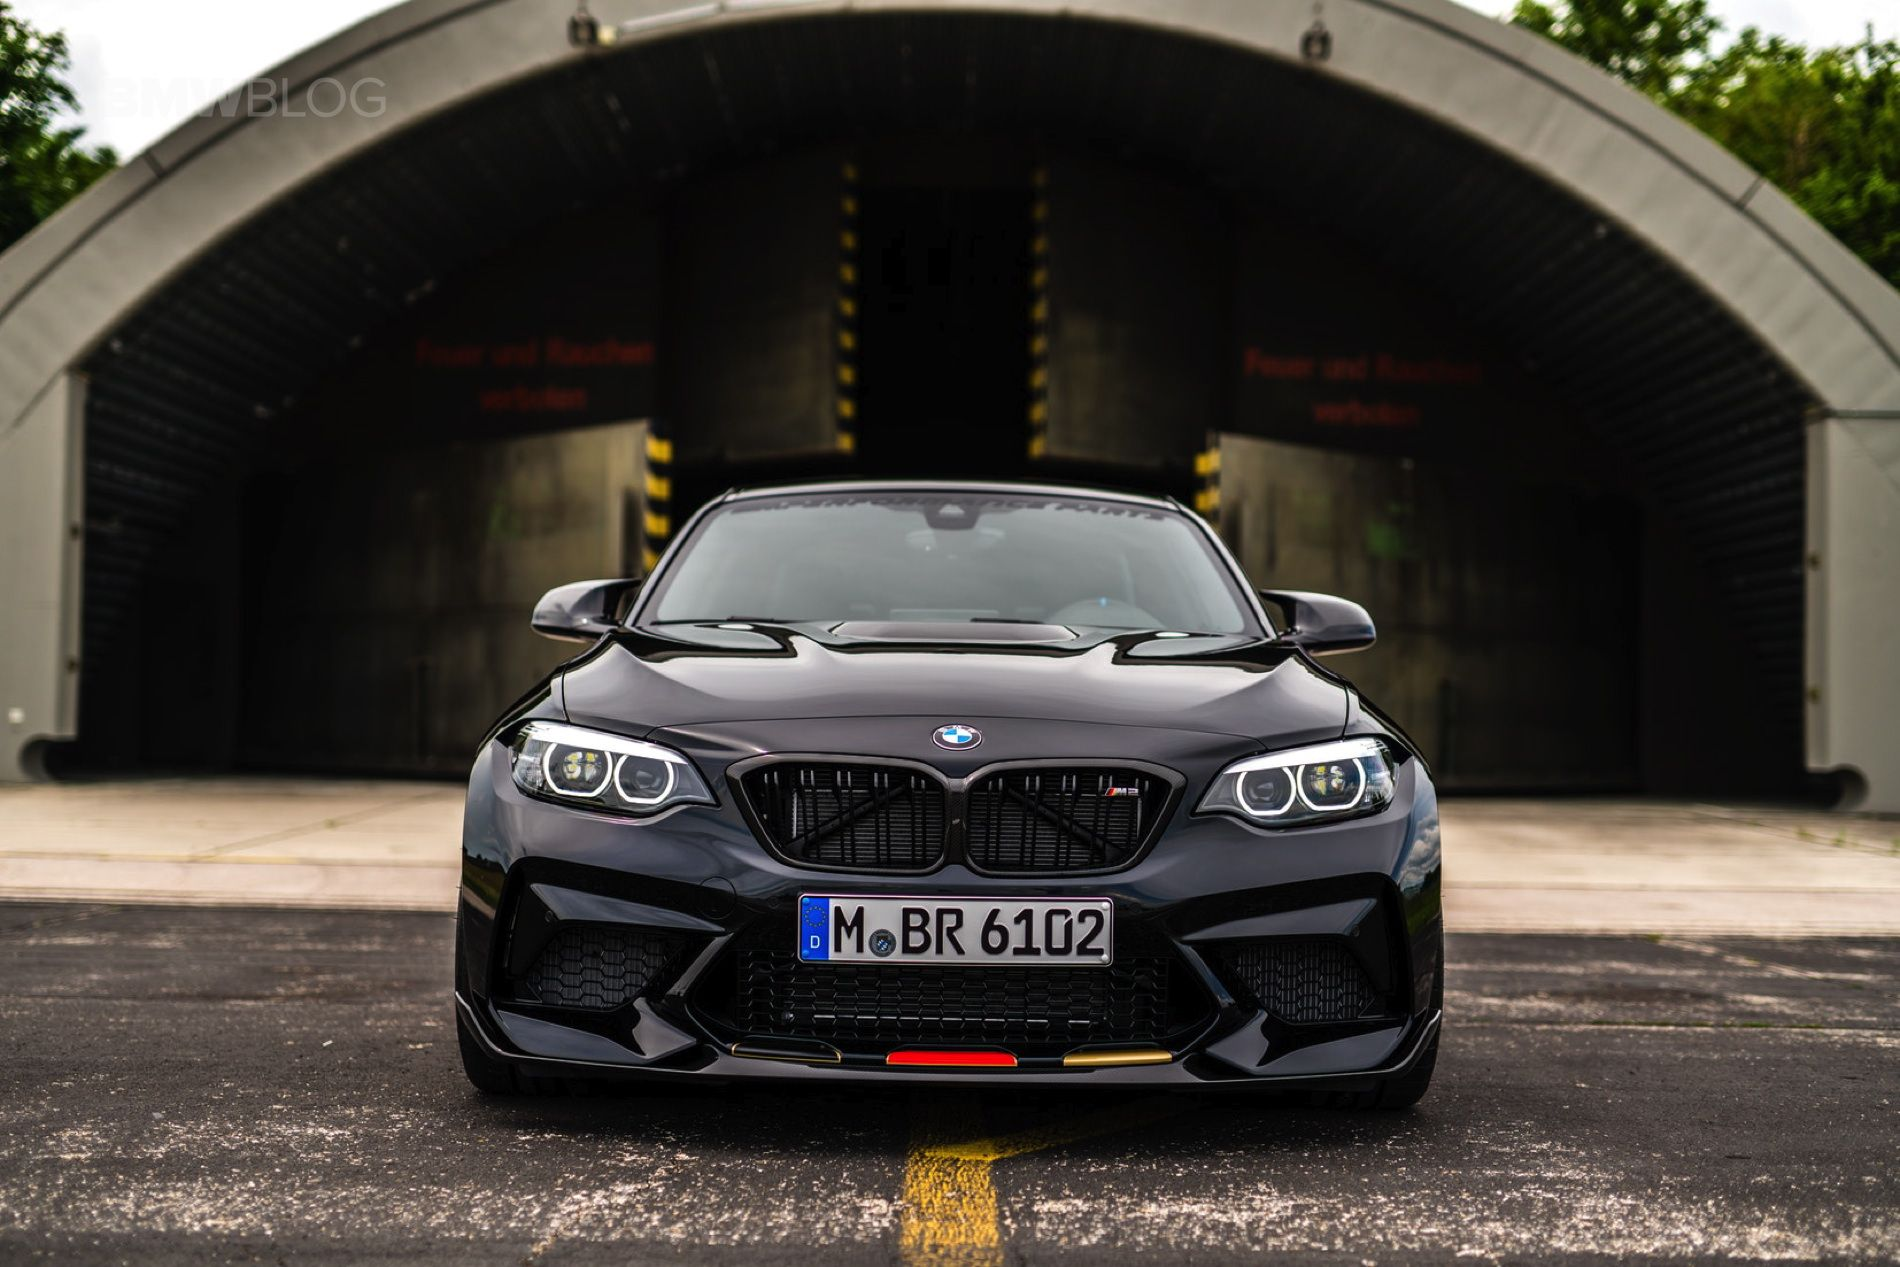 World Cup 2018 Bmw M2 Competition Supports The Germany National